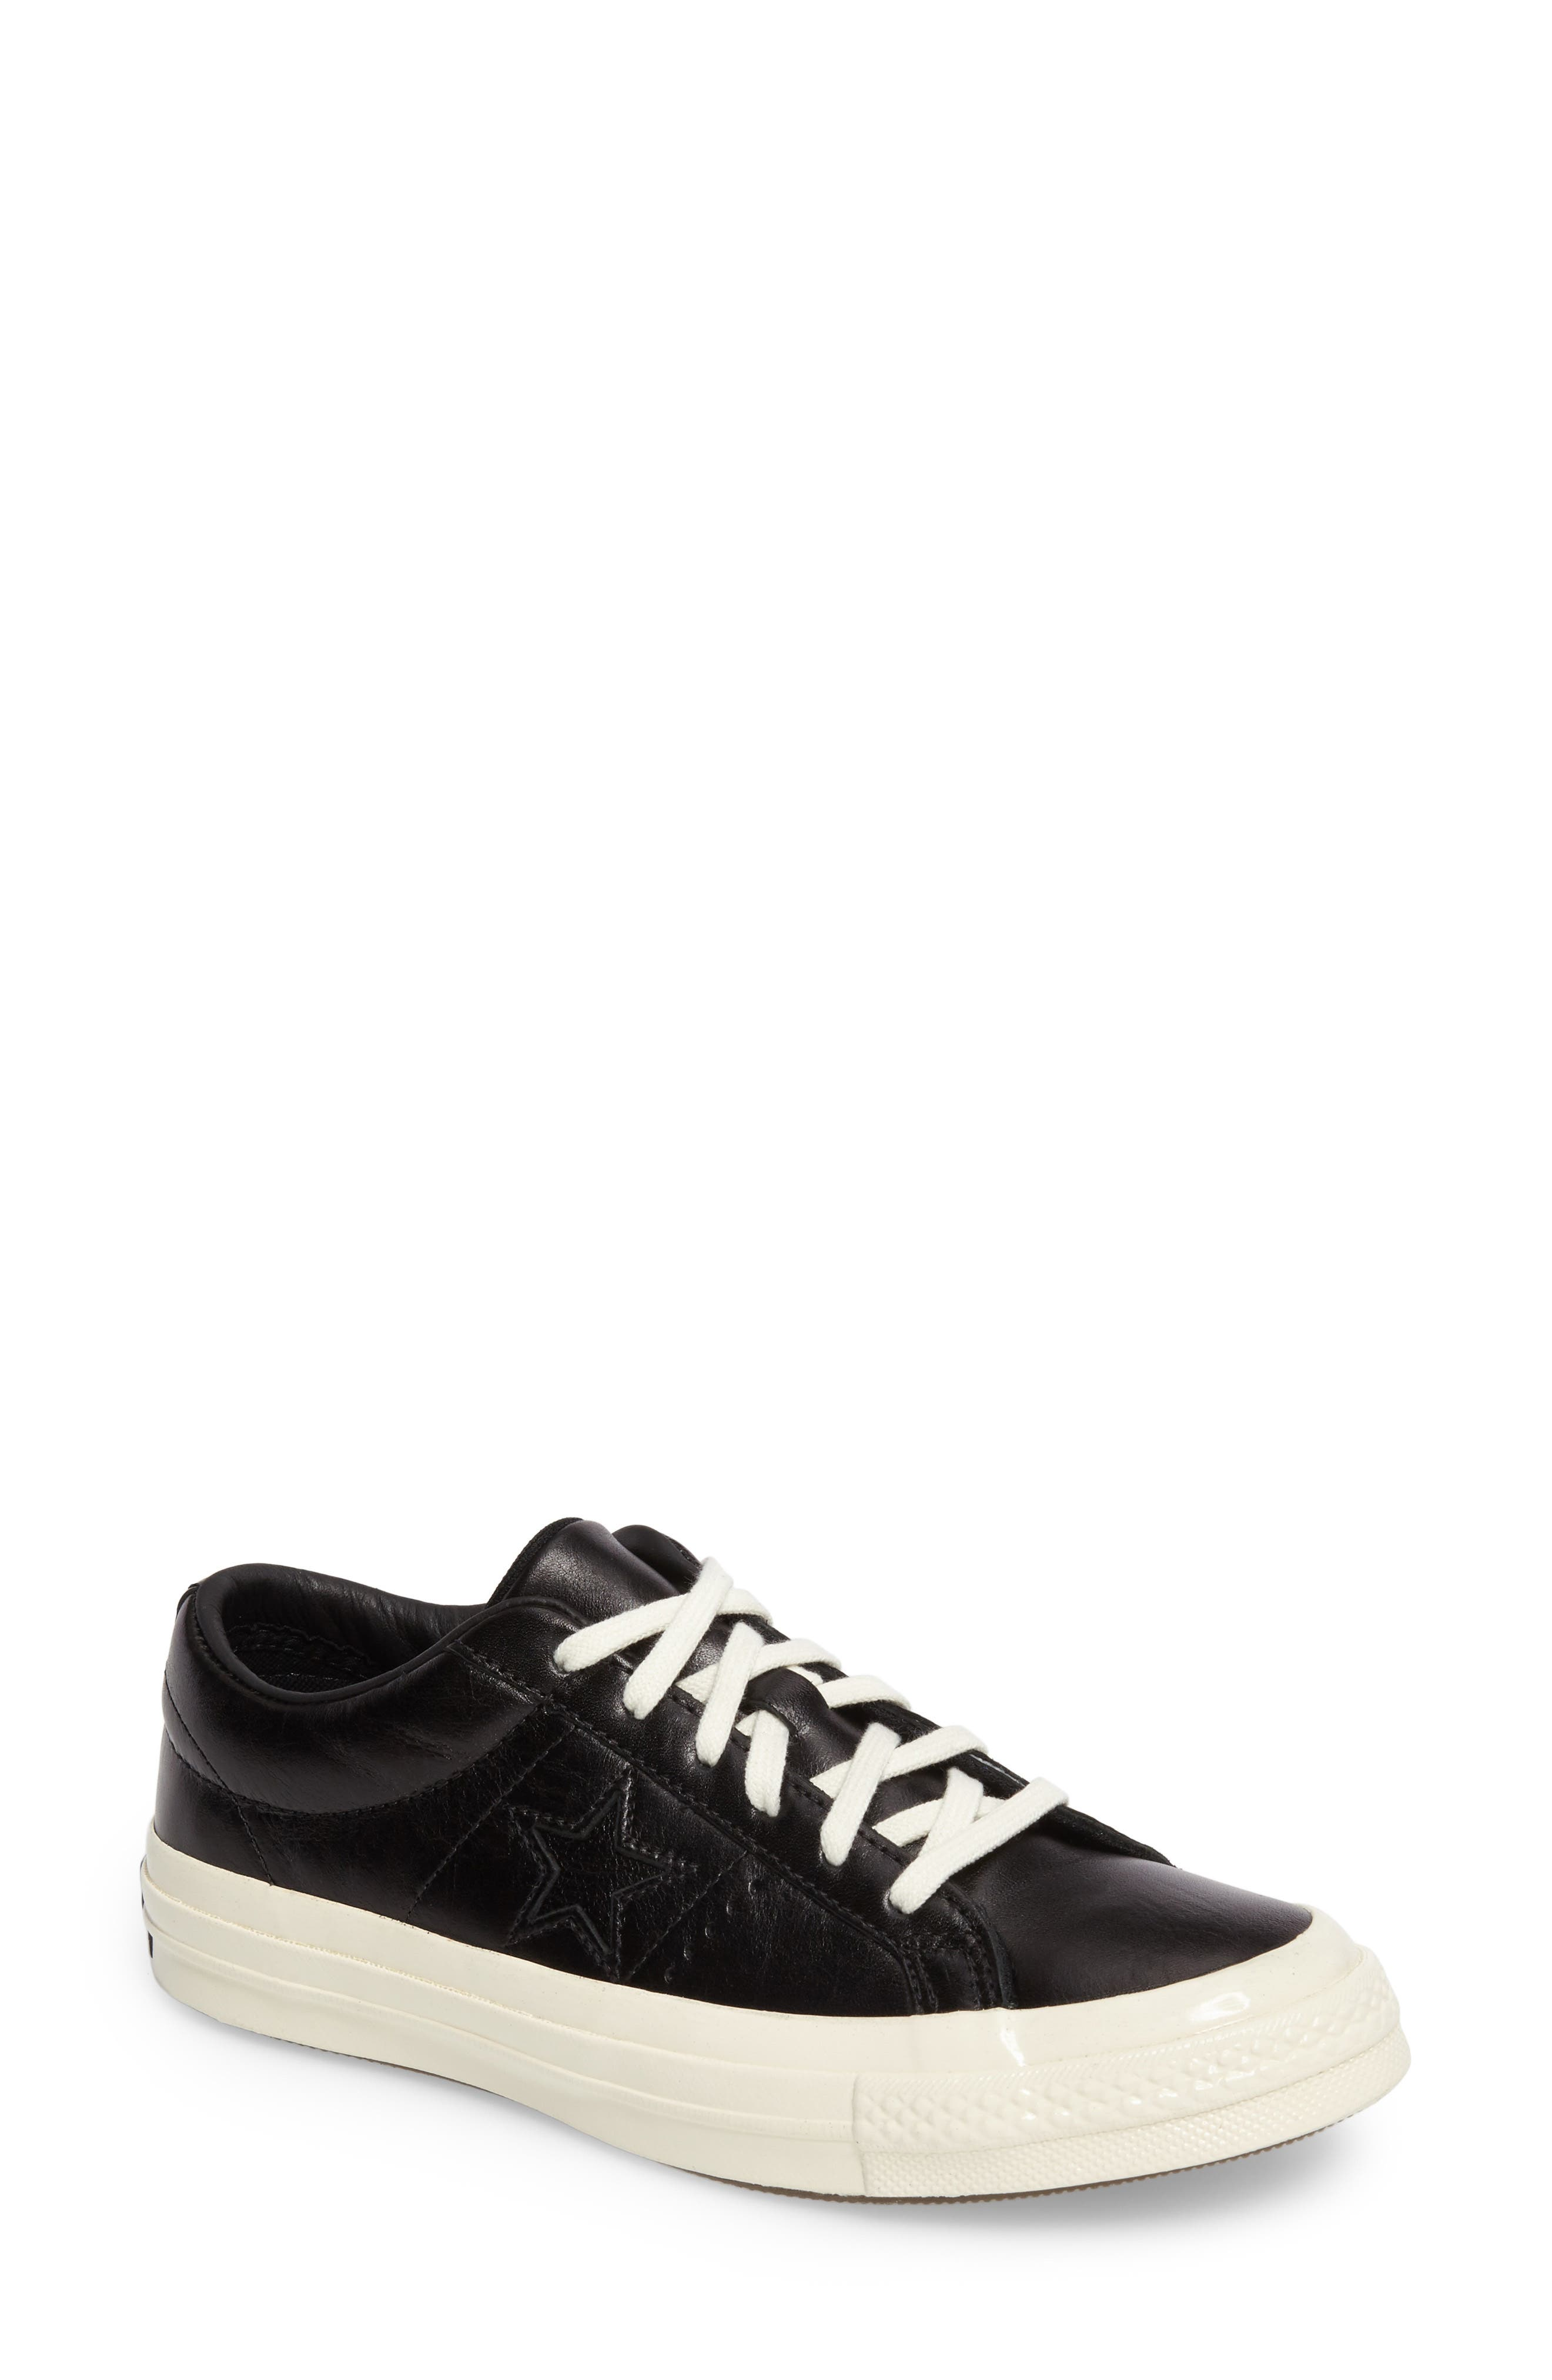 Main Image - Converse Chuck Taylor® All Star® One Star Low-Top Sneaker (Women)